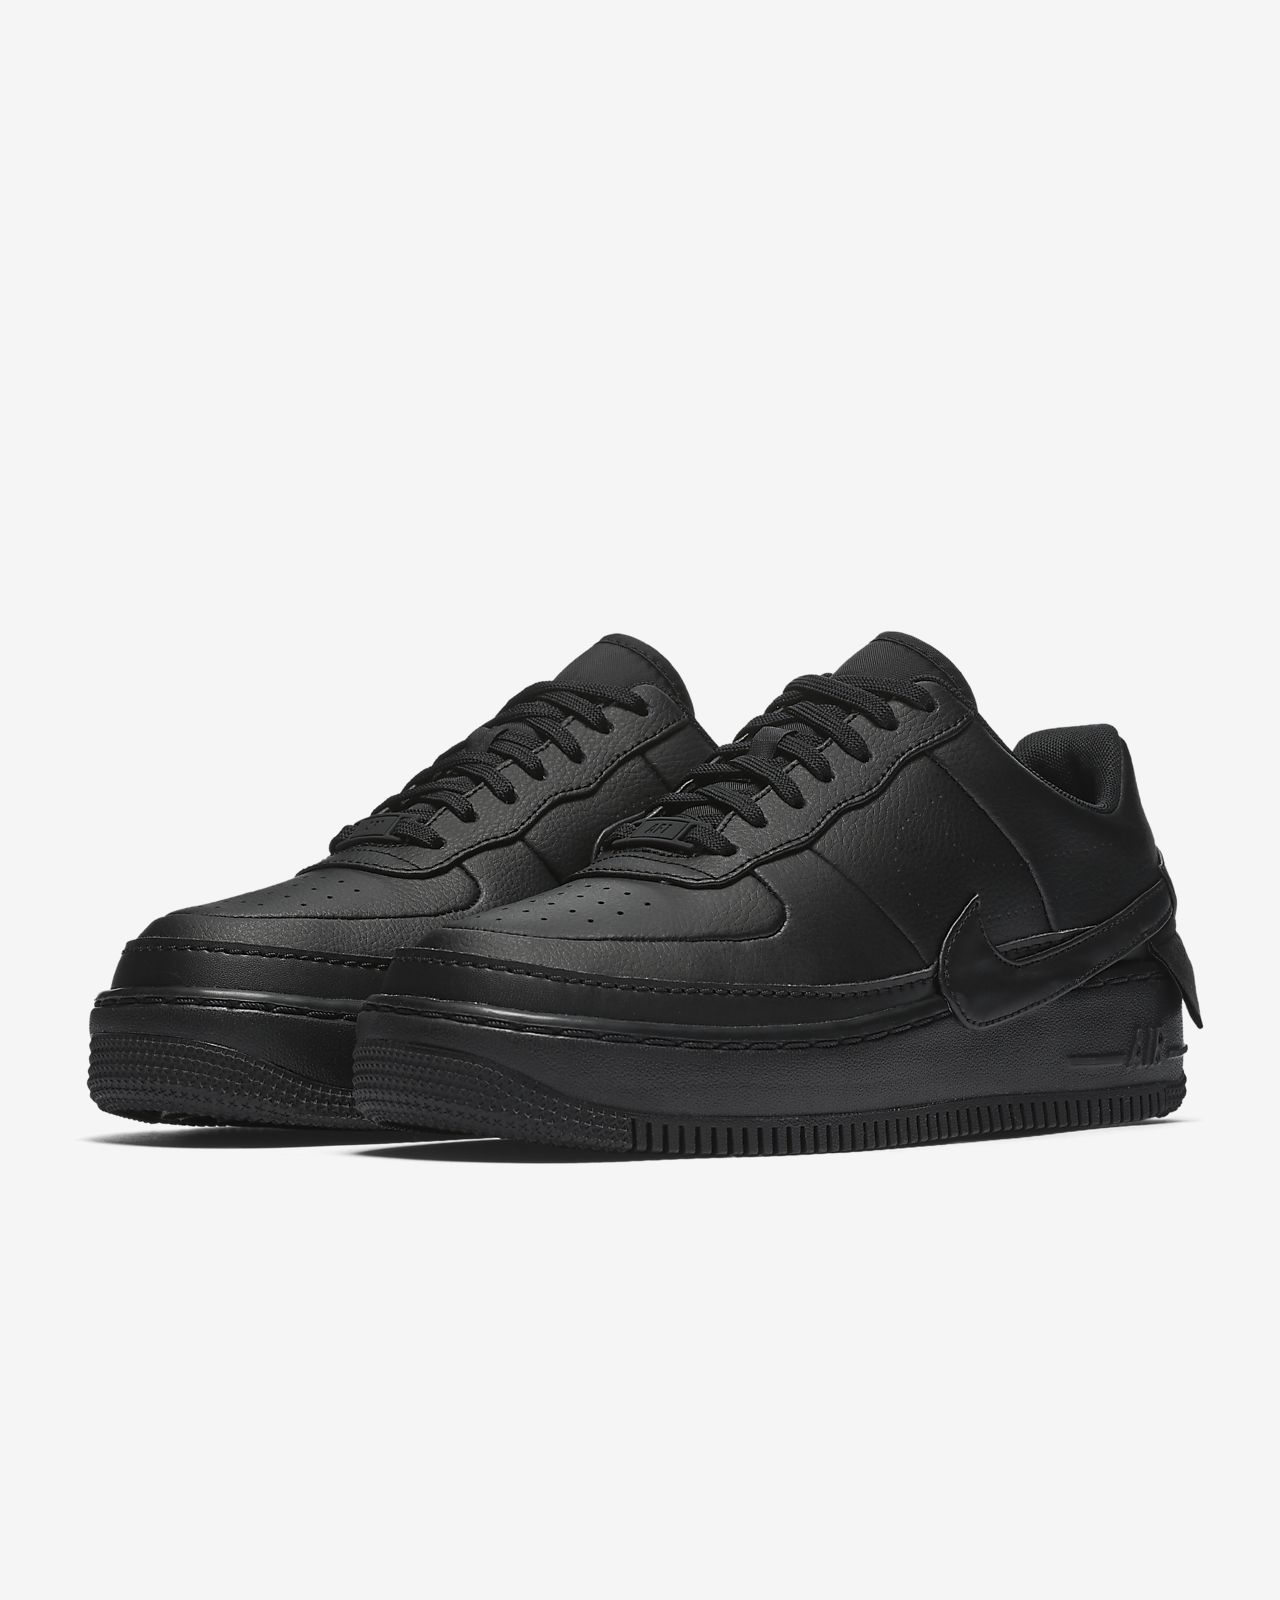 new arrival d4121 80544 ... Nike Air Force 1 Jester XX Shoe